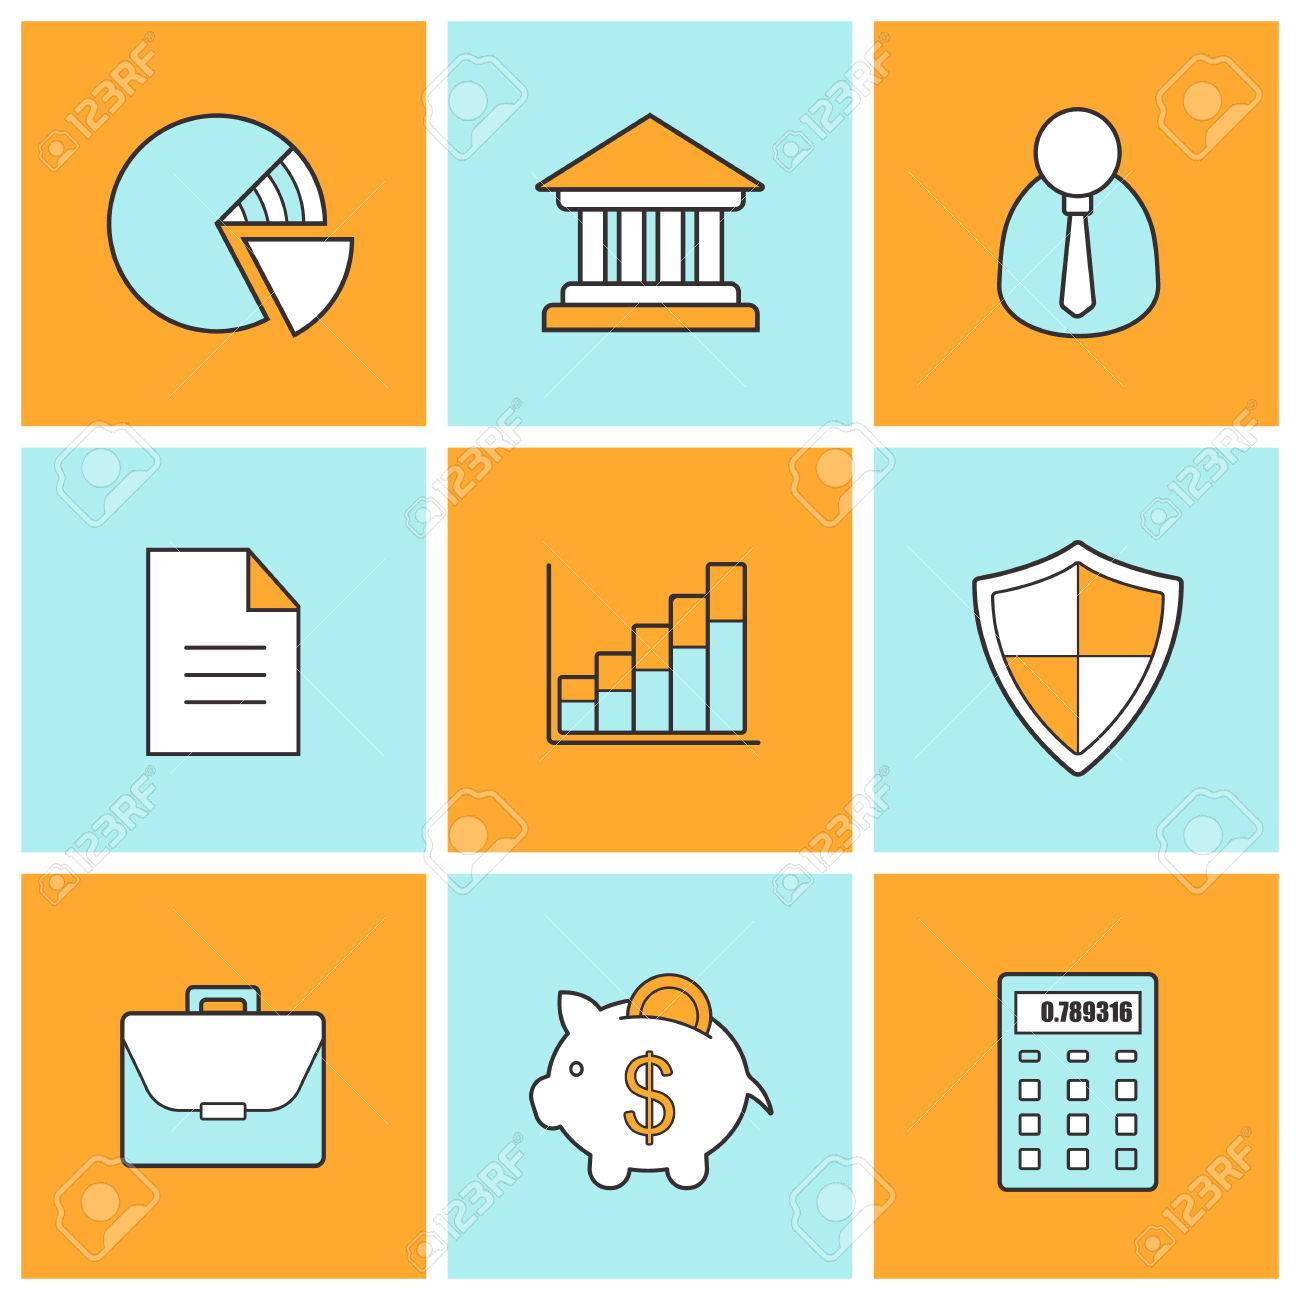 Bank Finance Linear Icons Set Stock Trading And Exchange Line